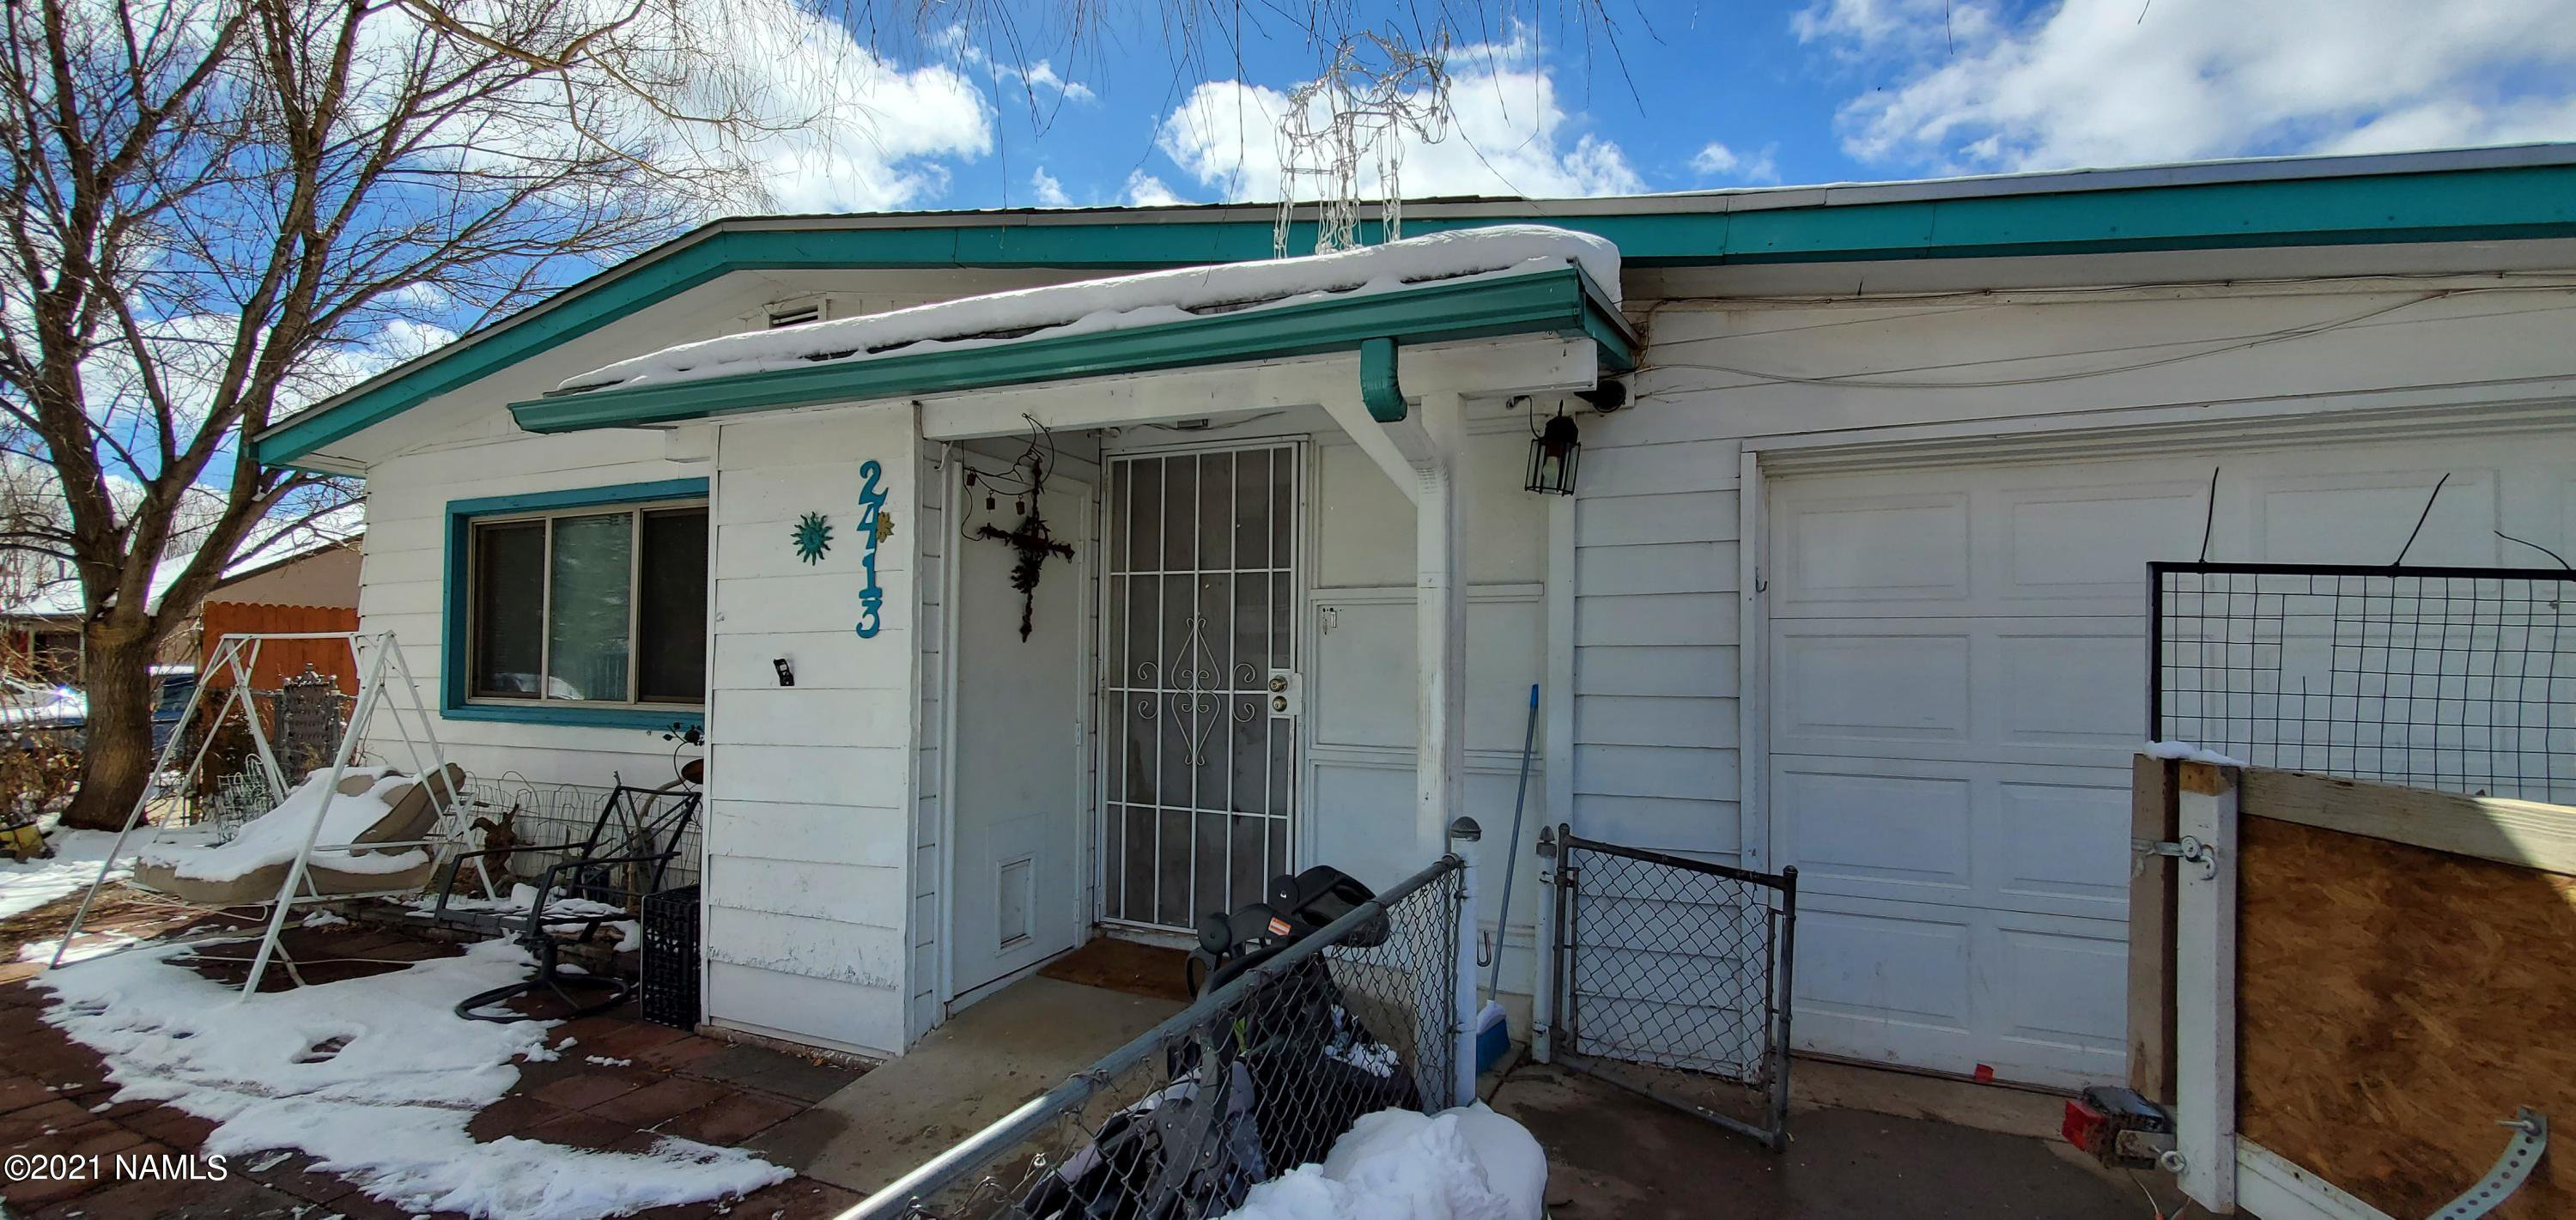 Lowest Priced Flagstaff Home in May 2021